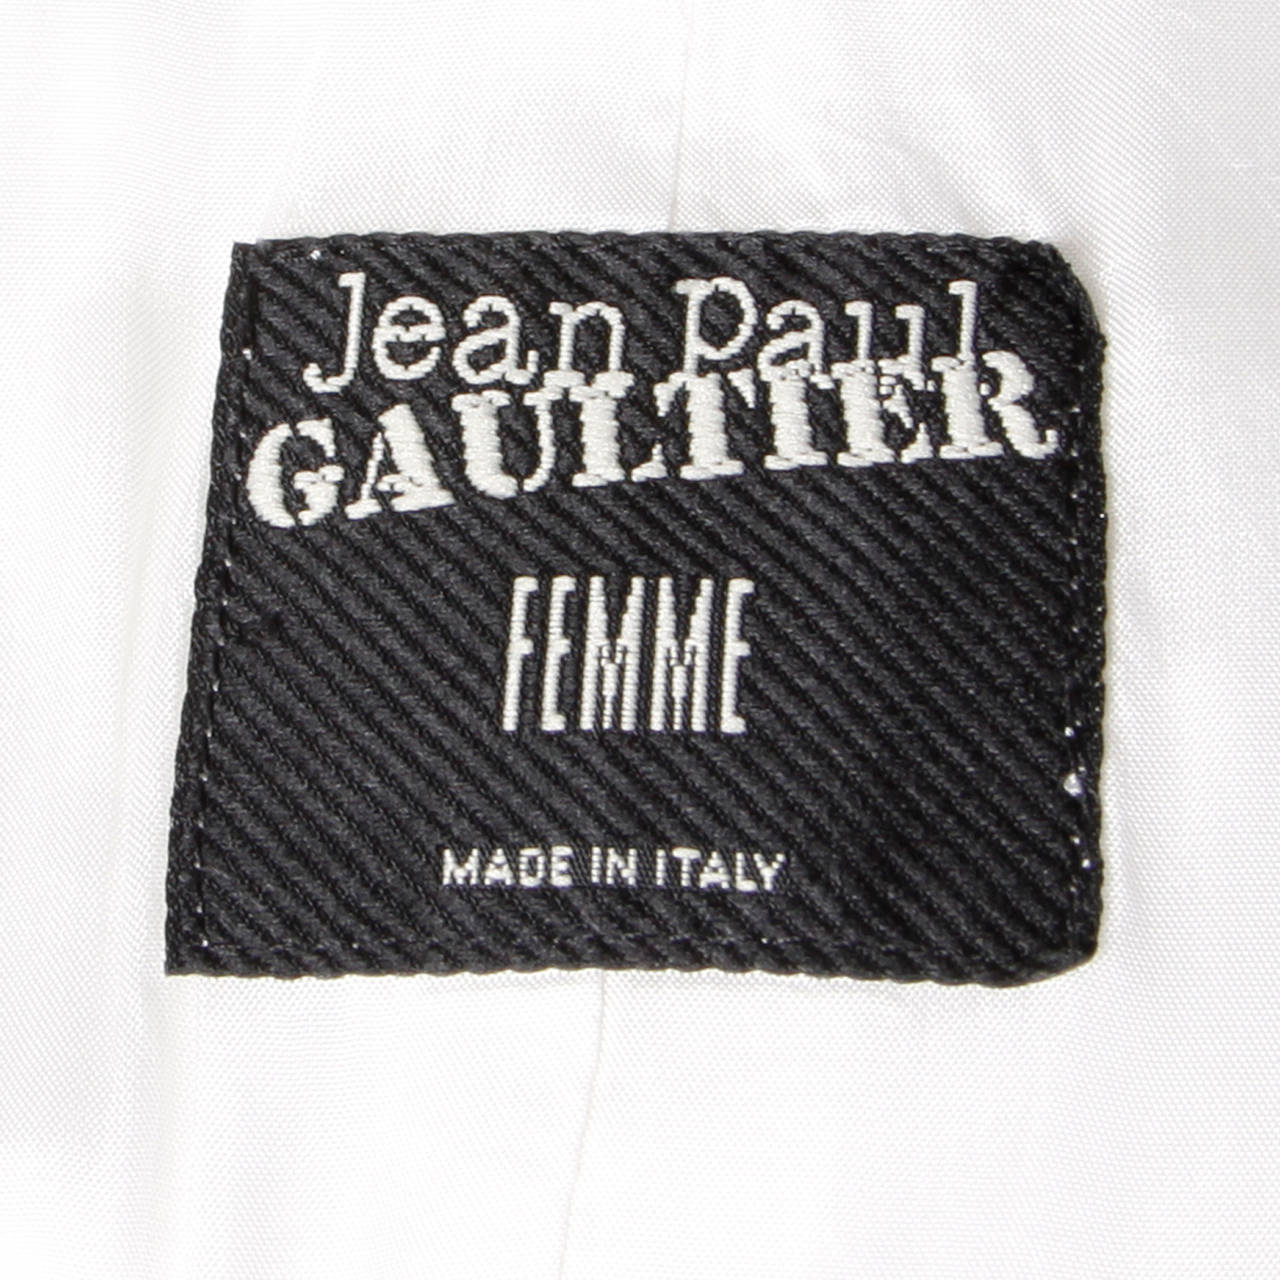 Jean Paul Gaultier Iconic Vintage Straitjacket Belted Bondage Dress For Sale 5